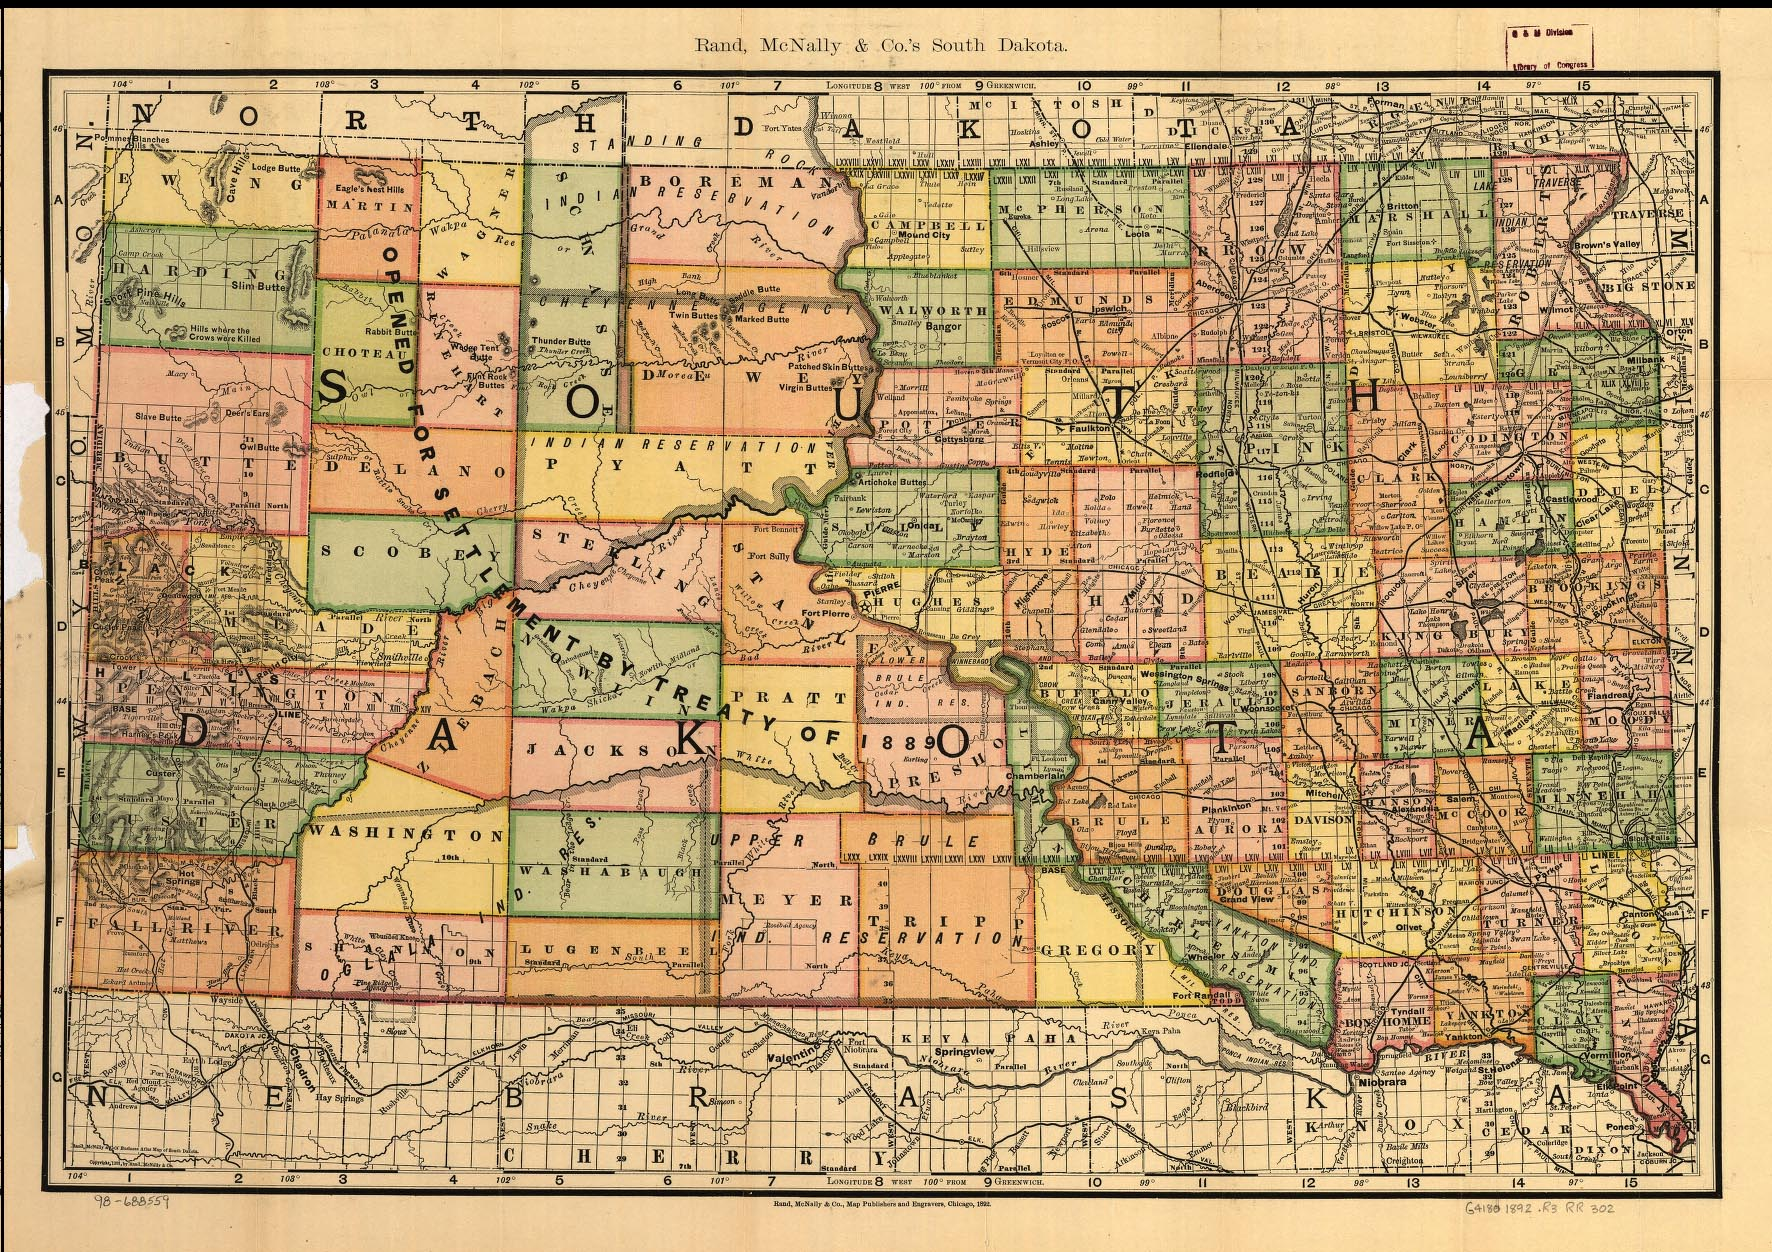 South Dakota Maps South Dakota Digital Map Library Table Of - Map of south dakota